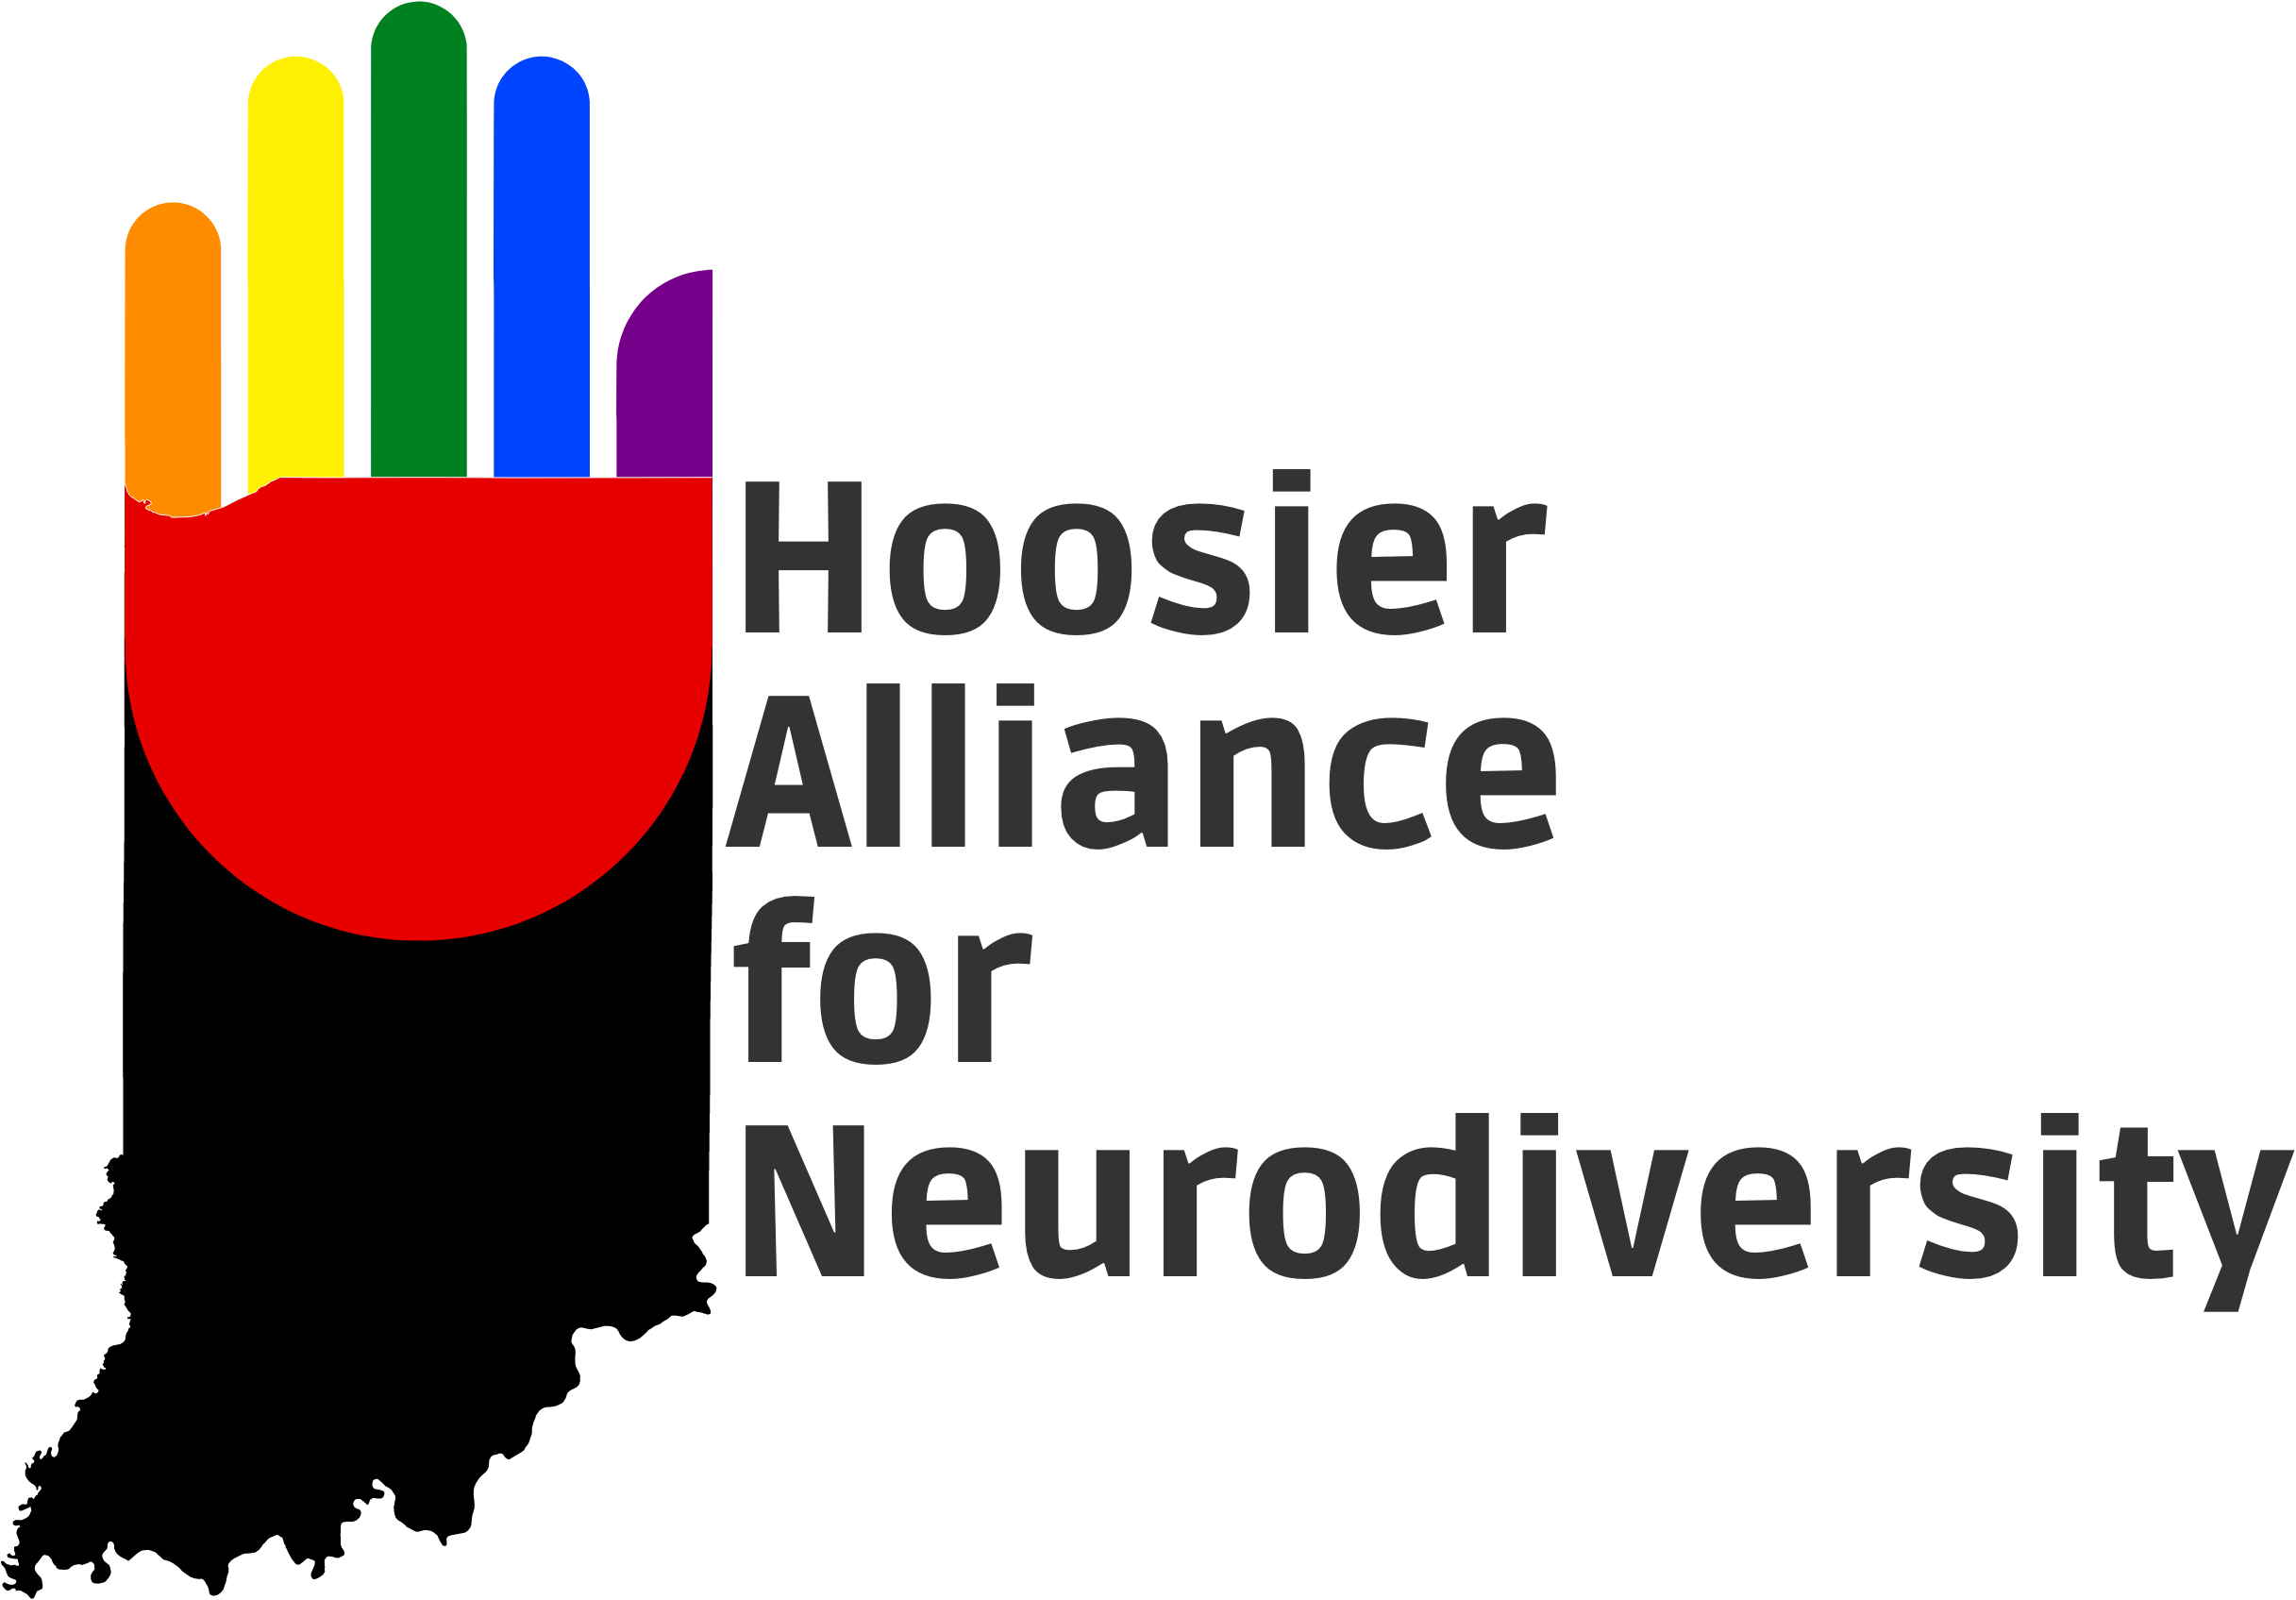 Hoosier Alliance for Neurodiversity Logo (A hand shaped like the state of Indiana)